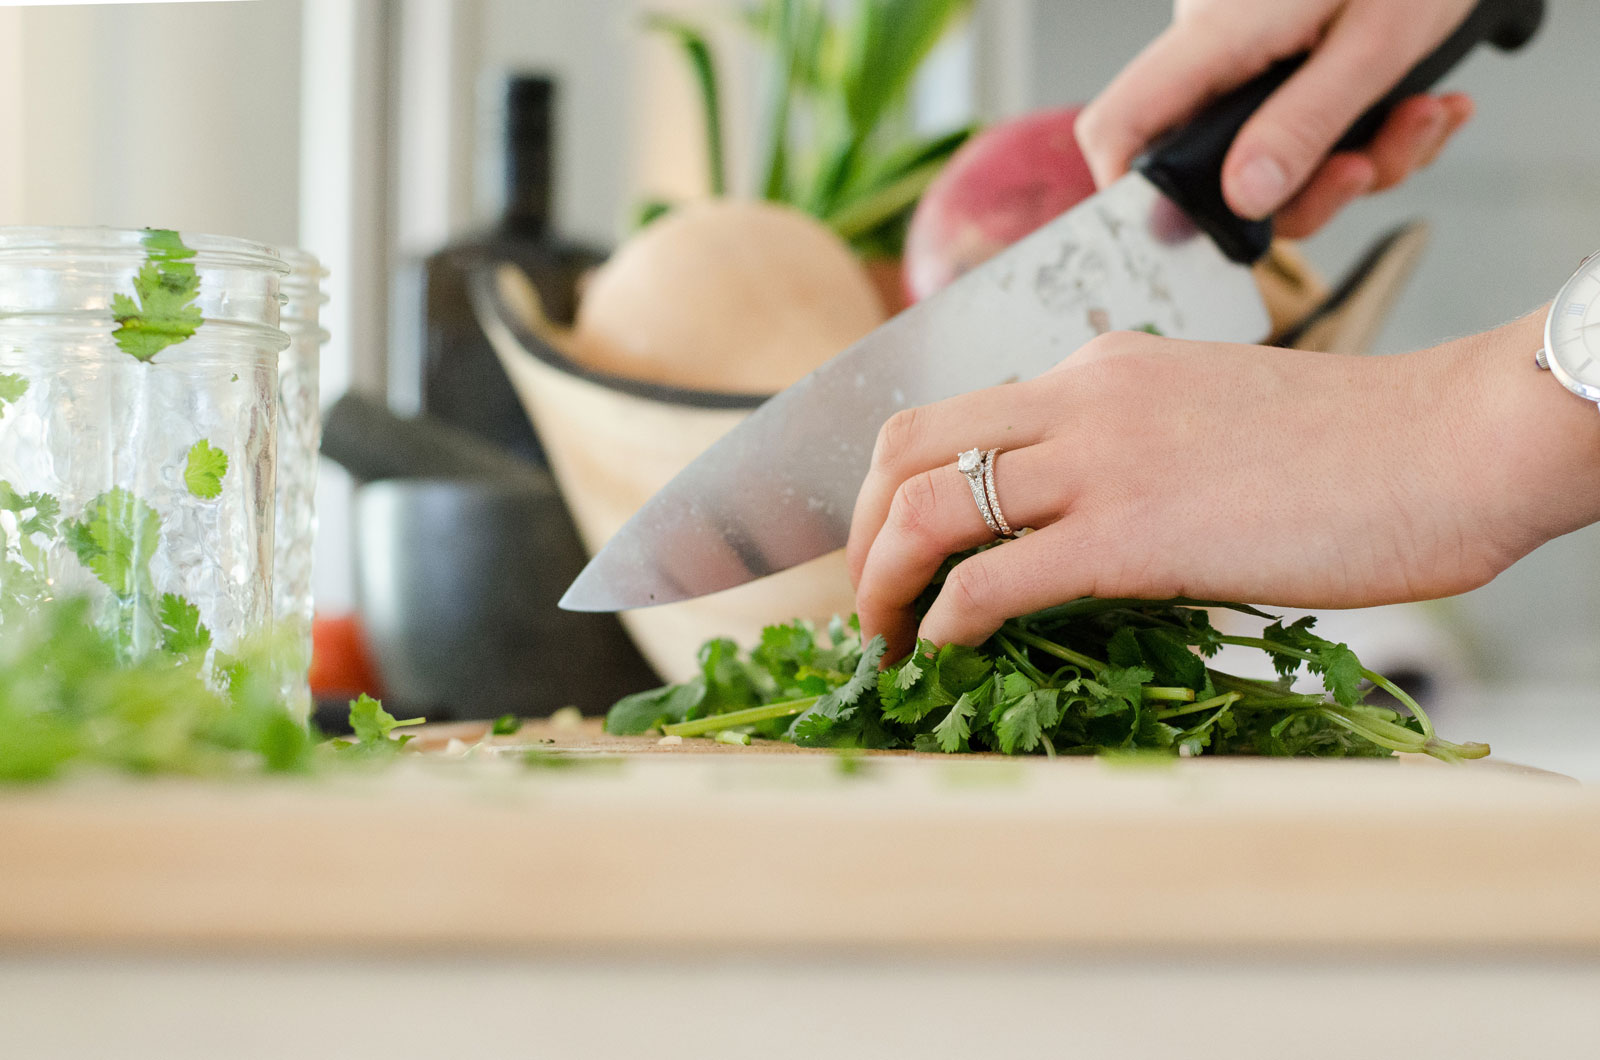 Chopping Vegetable | What Does Cold Pressed Juice Even Mean?